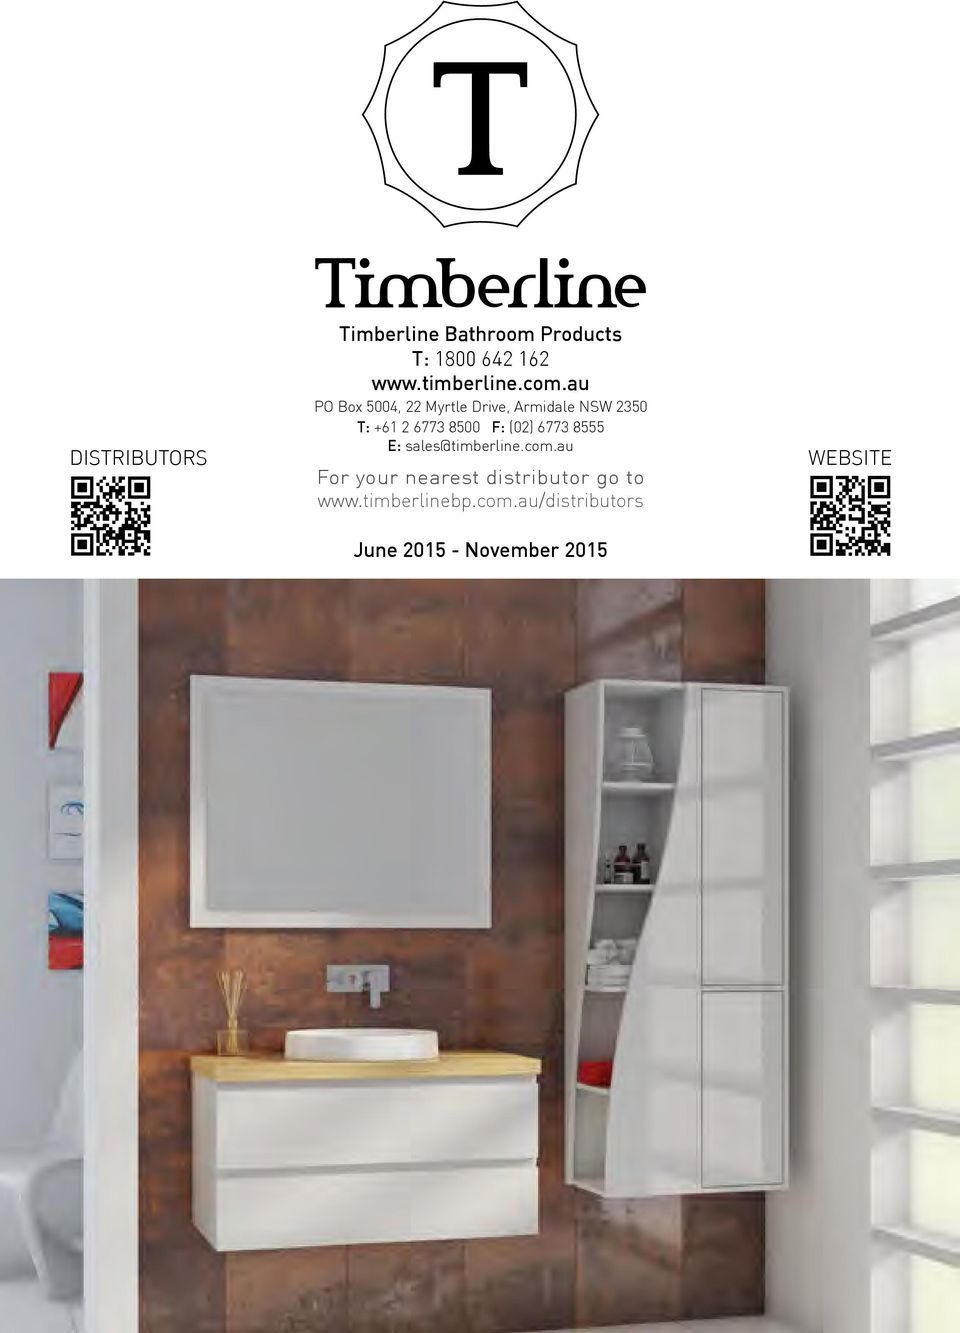 F: (02) 6773 8555 E: sales@timberline.com.